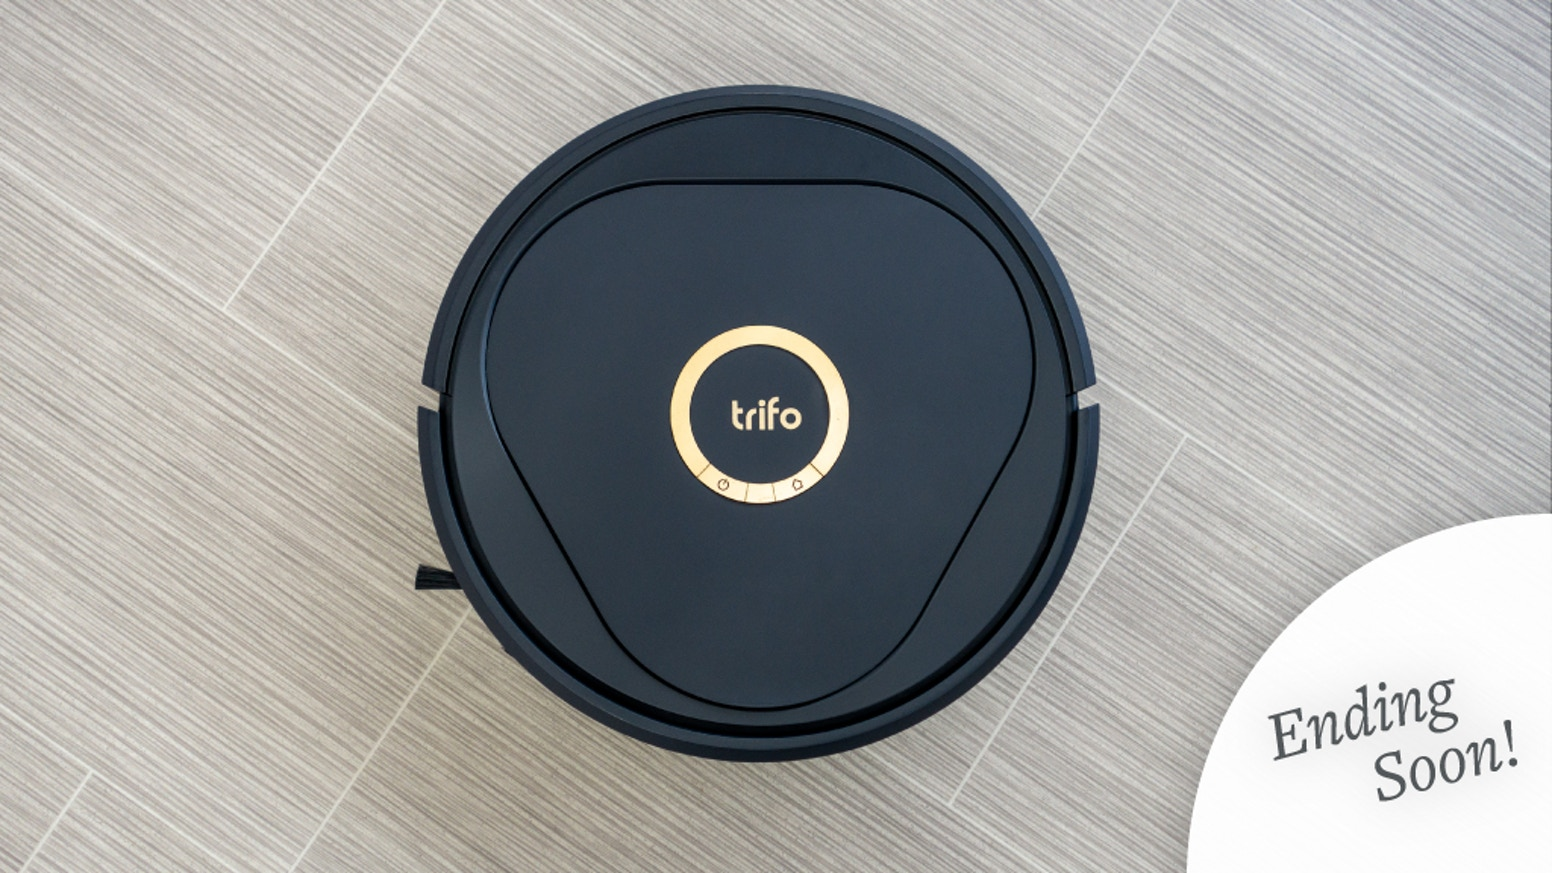 The First All-in-One Robot Vacuum & Mop with Intruder Detection